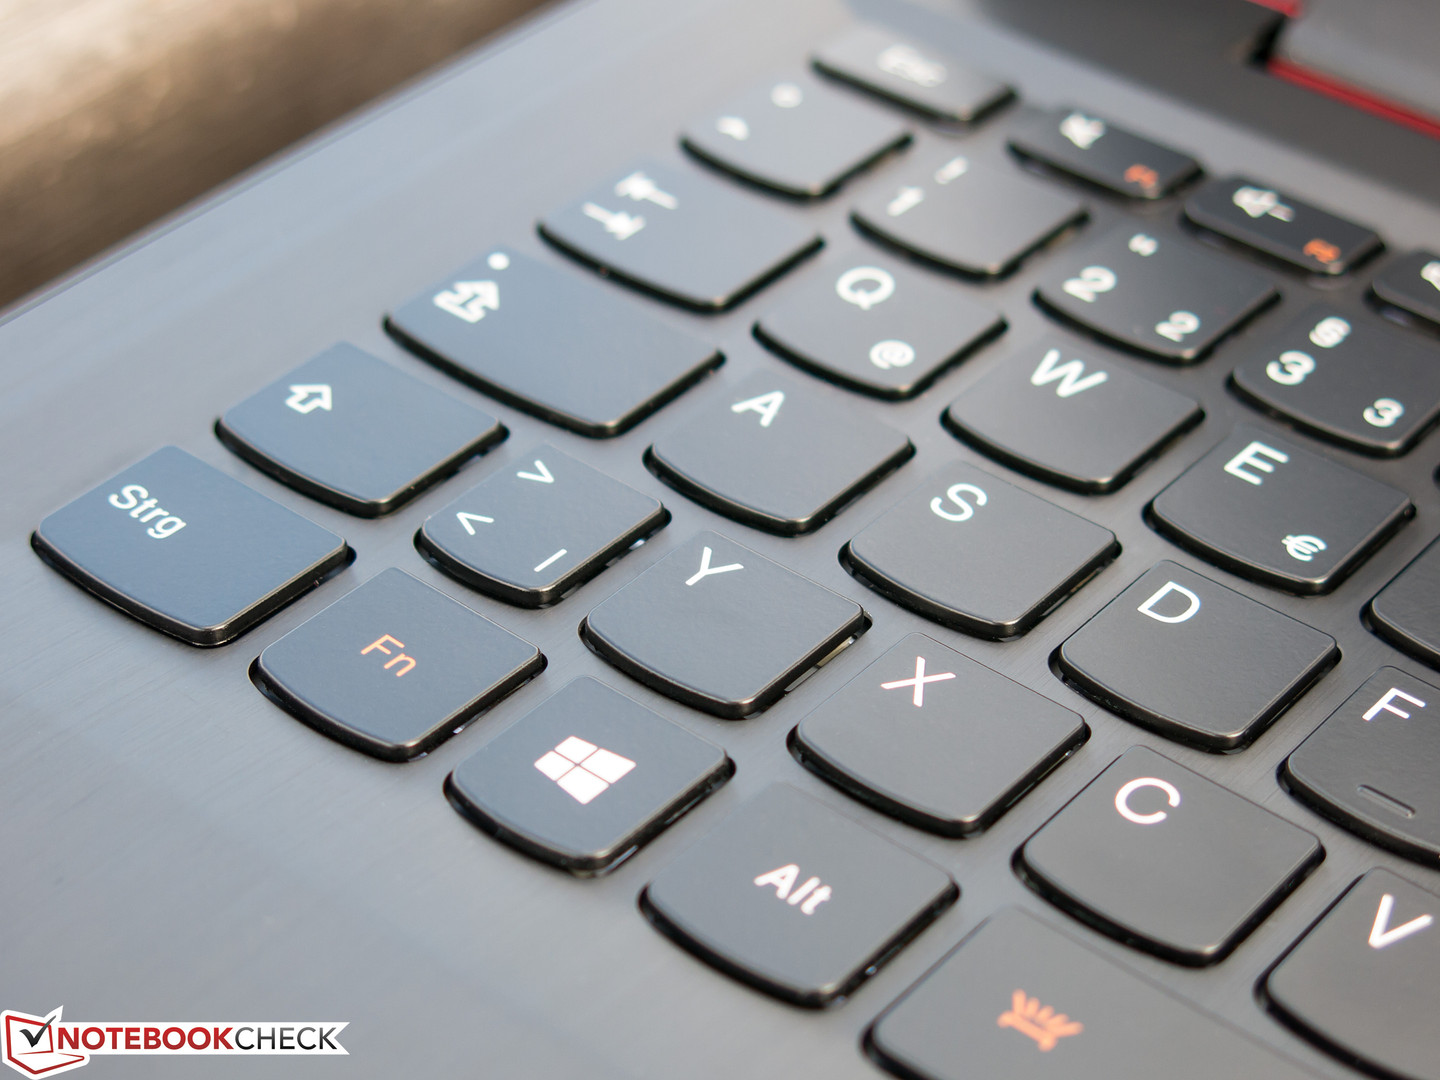 lenovo ideapad 500s 13isk subnotebook review reviews. Black Bedroom Furniture Sets. Home Design Ideas